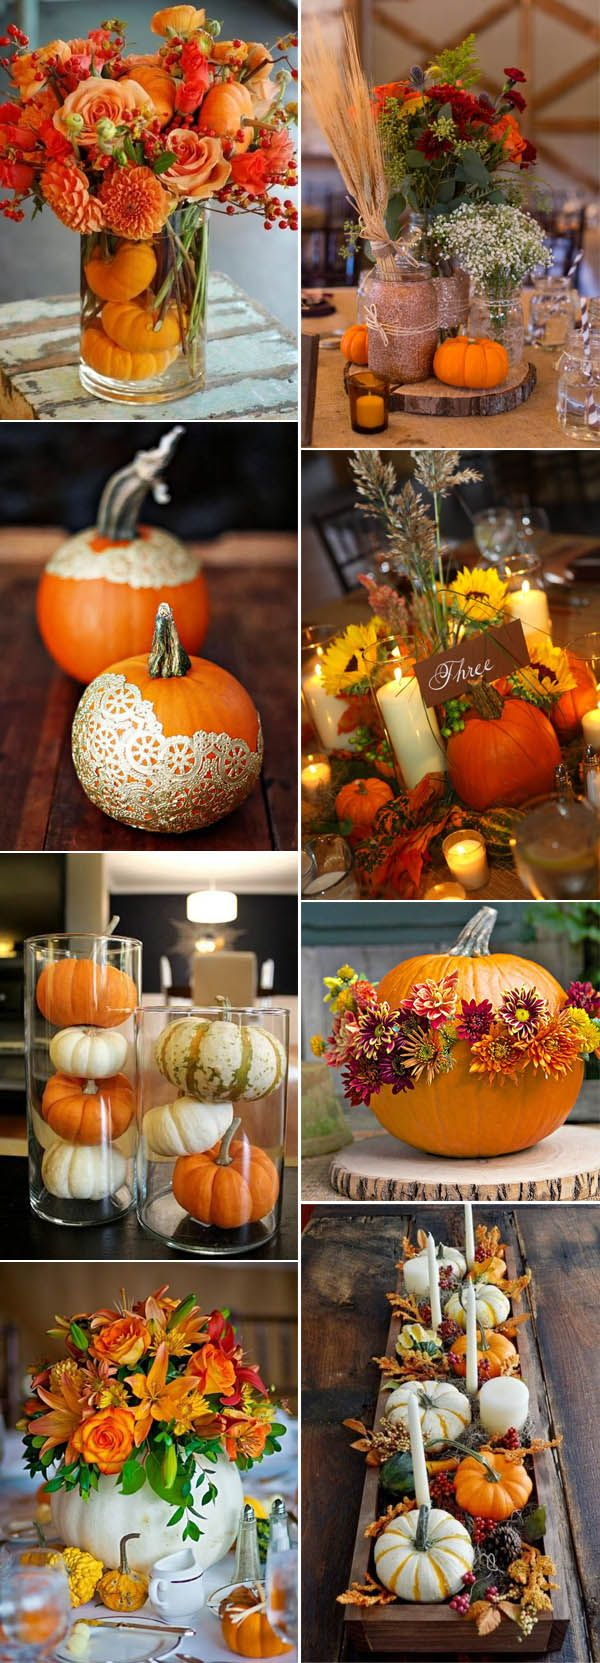 46 Inspirational Fall Autumn Wedding Centerpieces Ideas Fall Wedding Centerpieces Fall Thanksgiving Fall Centerpiece